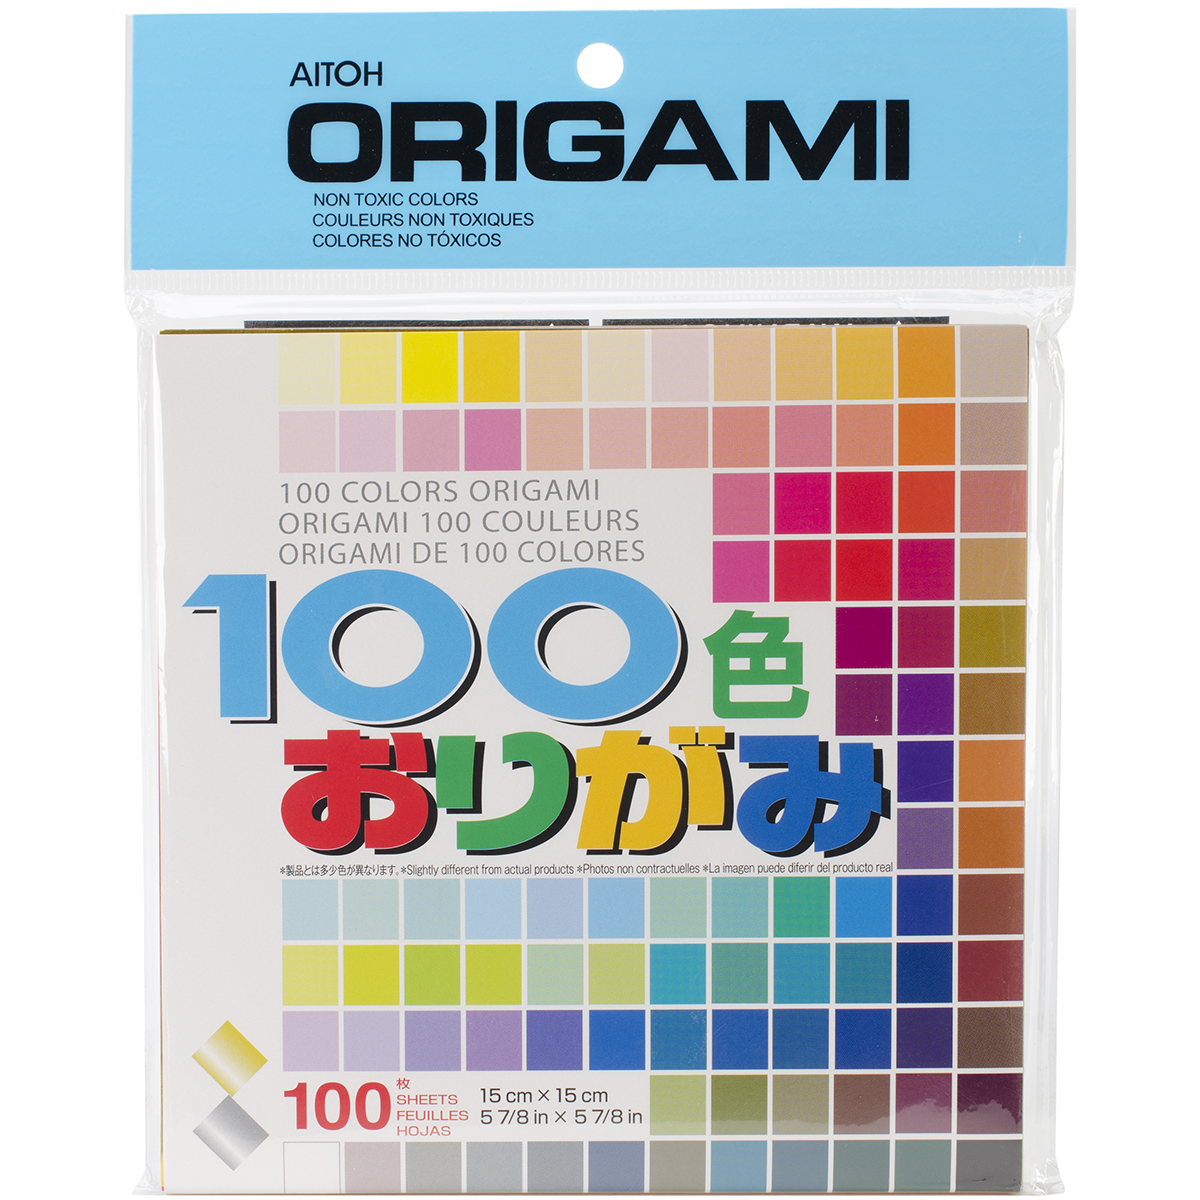 Aitoh Origami Paper, 5.875 by 5.875-Inch, 100 Colors, 100-Pack Multi-Colored